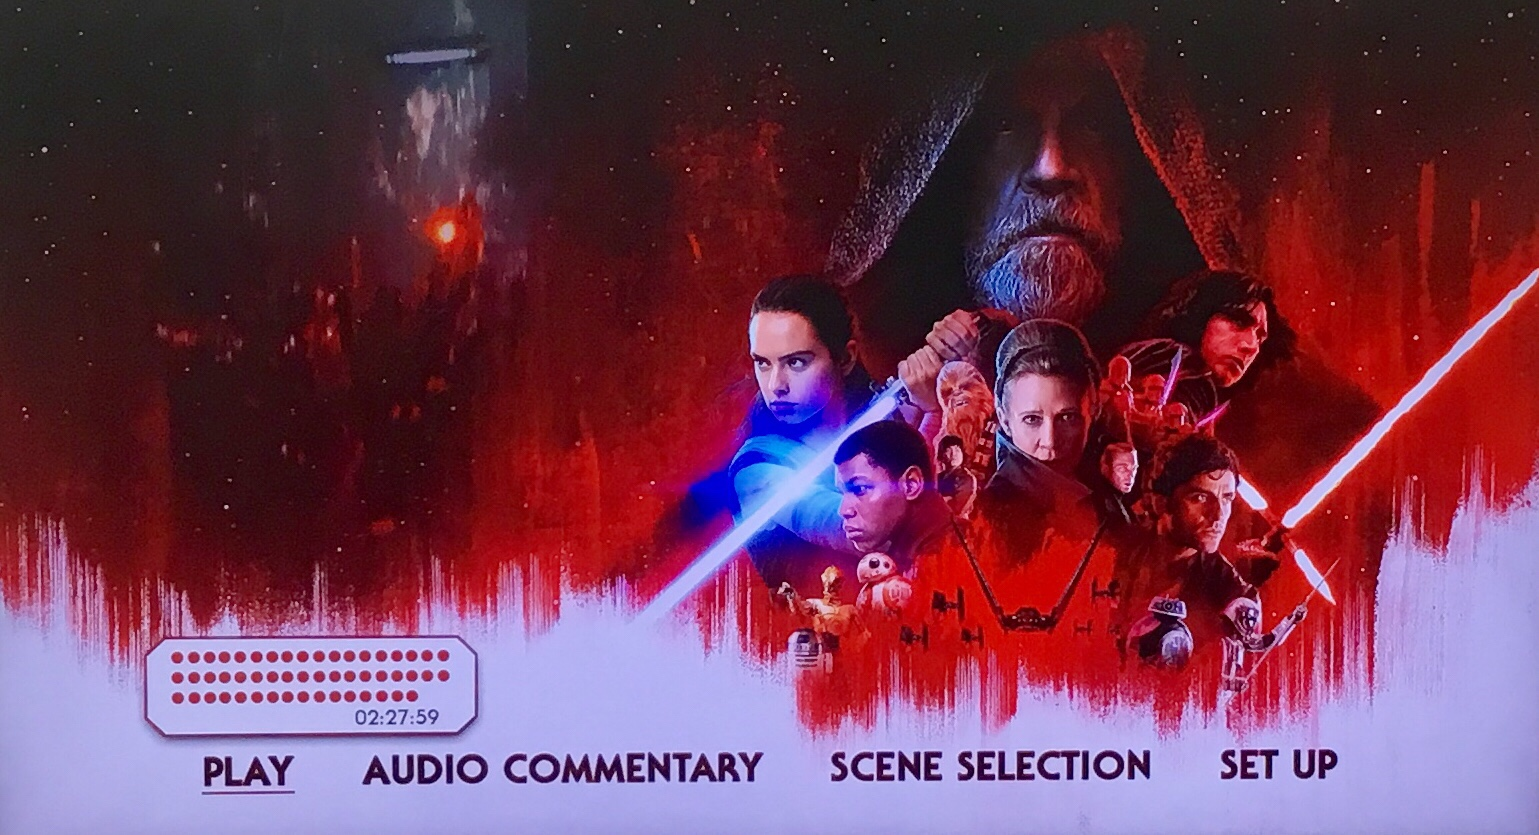 The menu screen of the Bluray of Star Wars: The Last Jedi